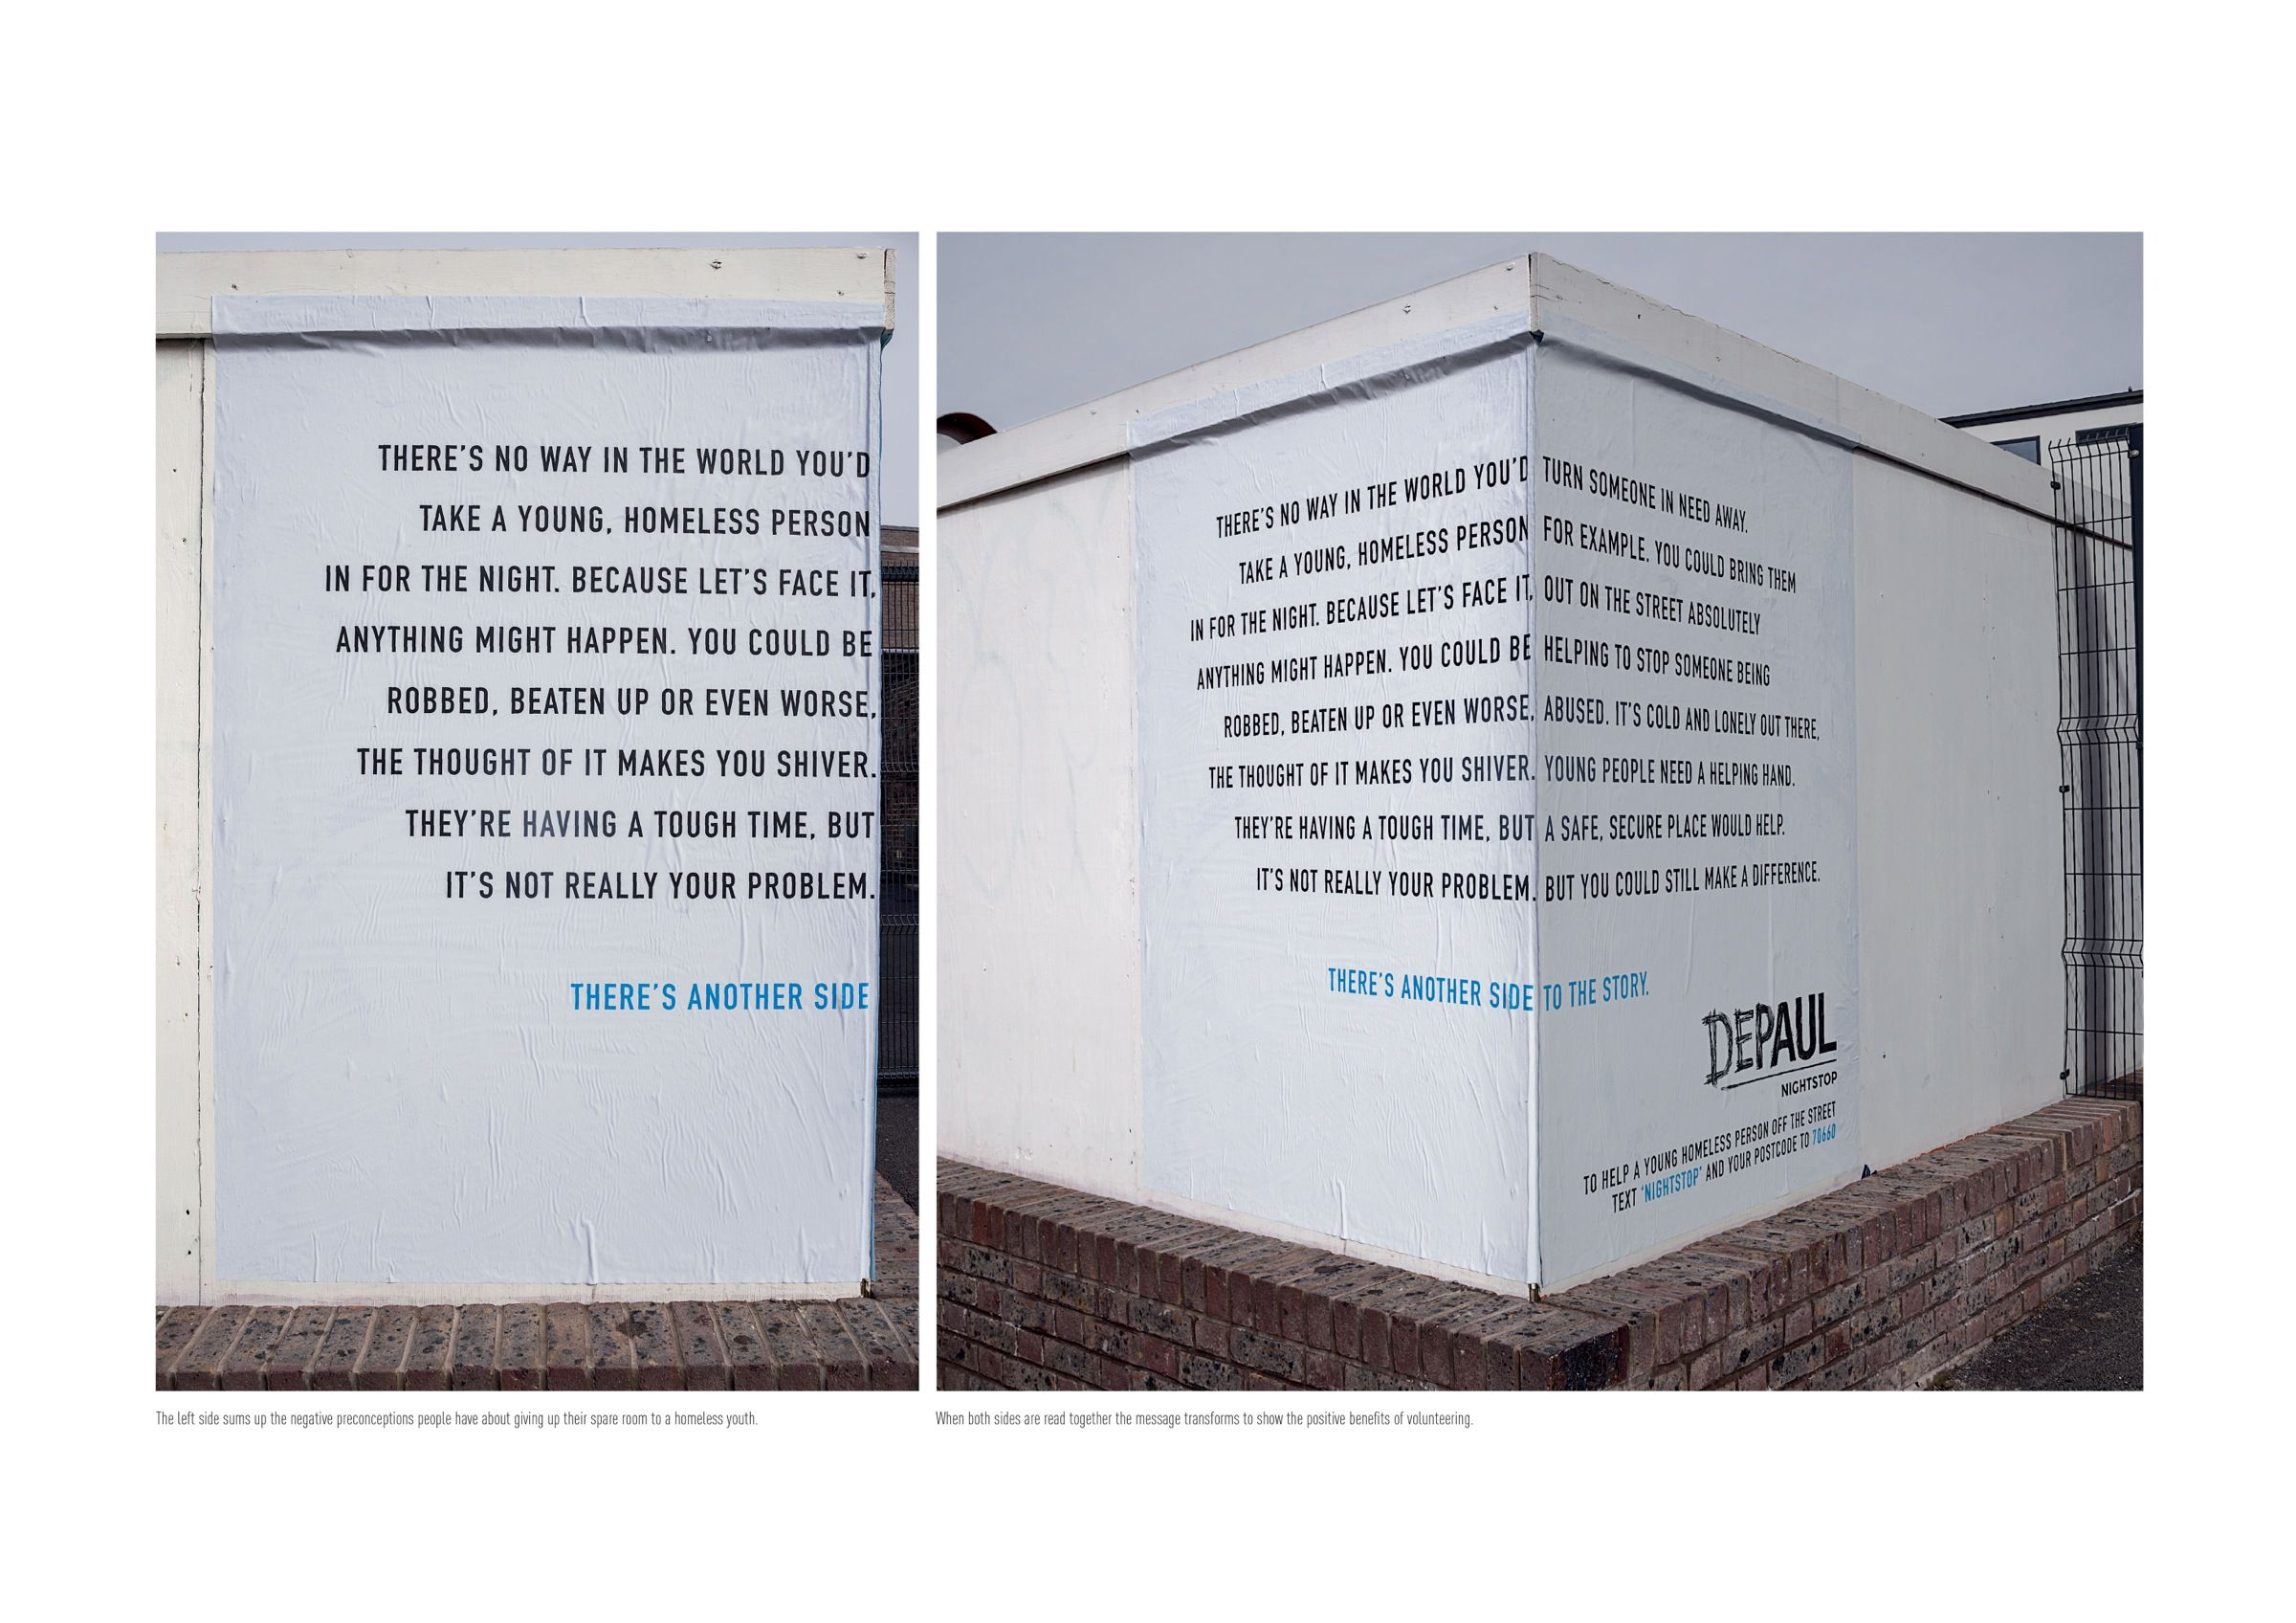 Color printing depaul - There S Another Side To The Story Serious Advertising Depaul Ad Street